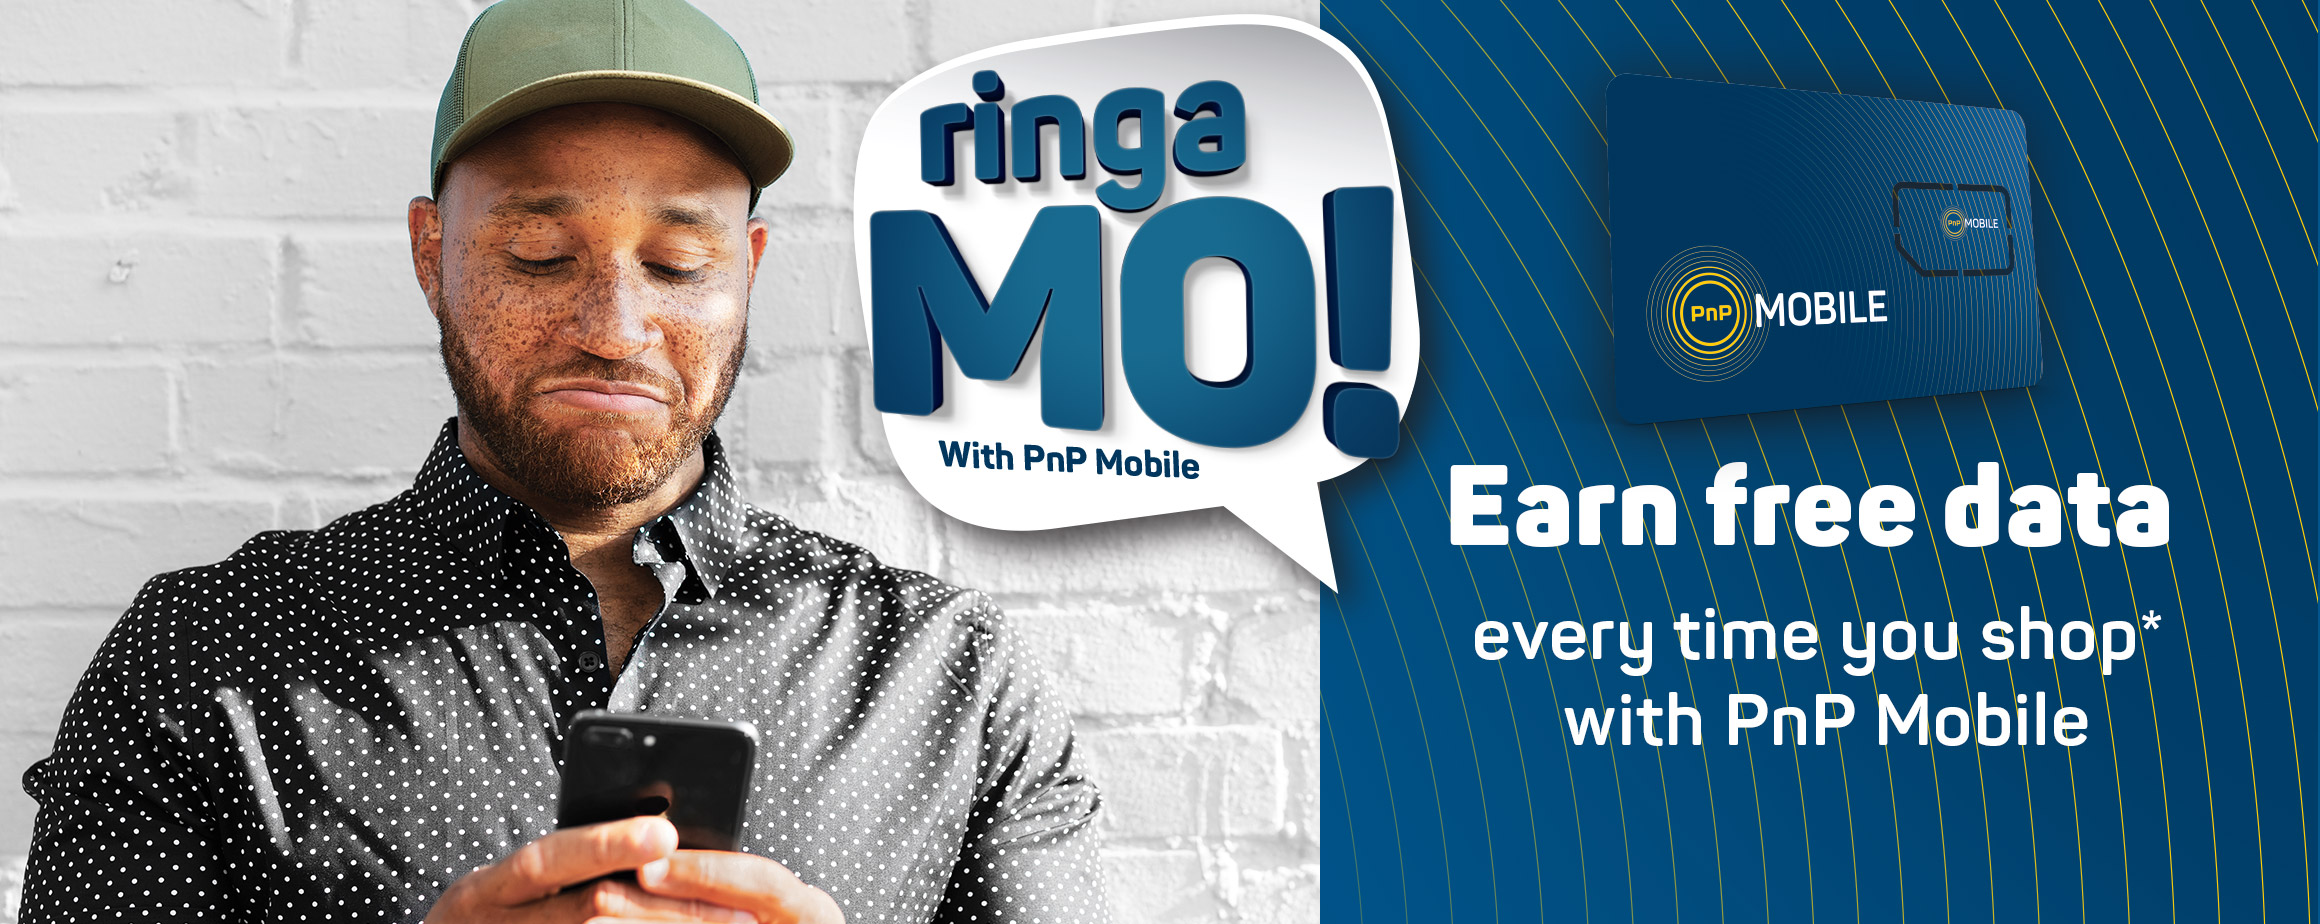 Ringa Mo! with PnP Mobile. Earn free data every time you shop with PnP Mobile